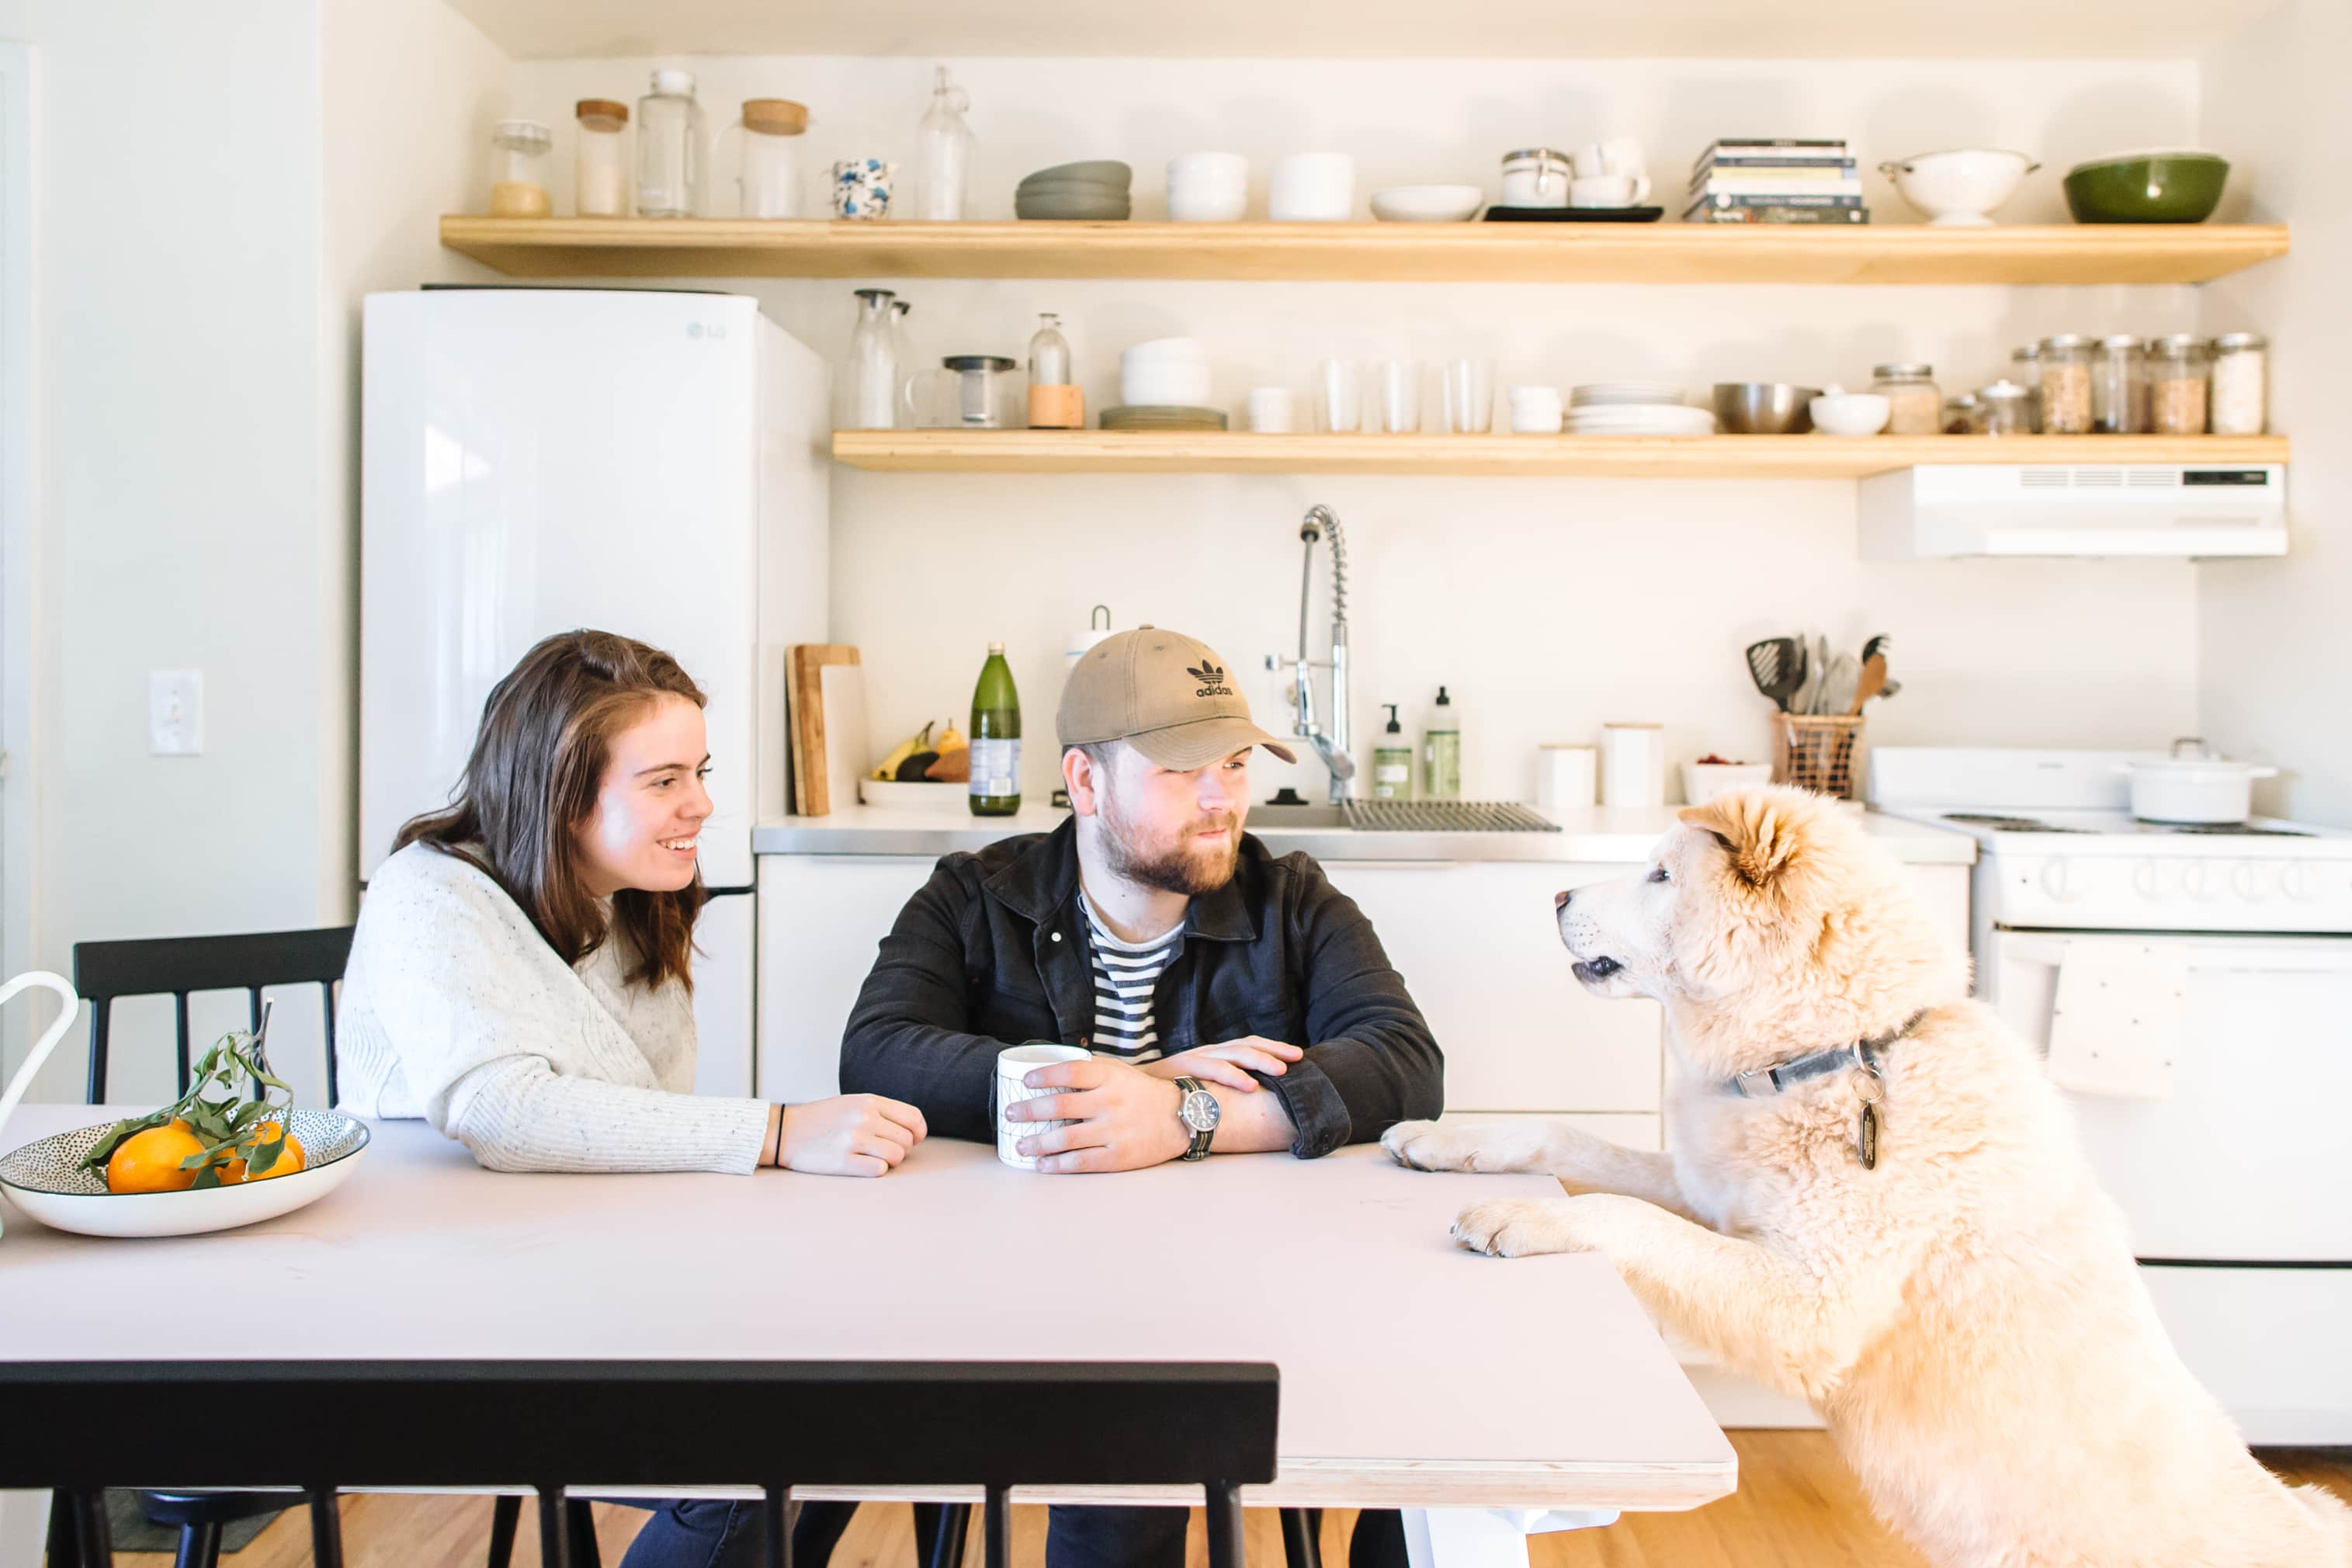 House Tour: A Simple Chic 550 Square Feet in Detroit | Apartment Therapy